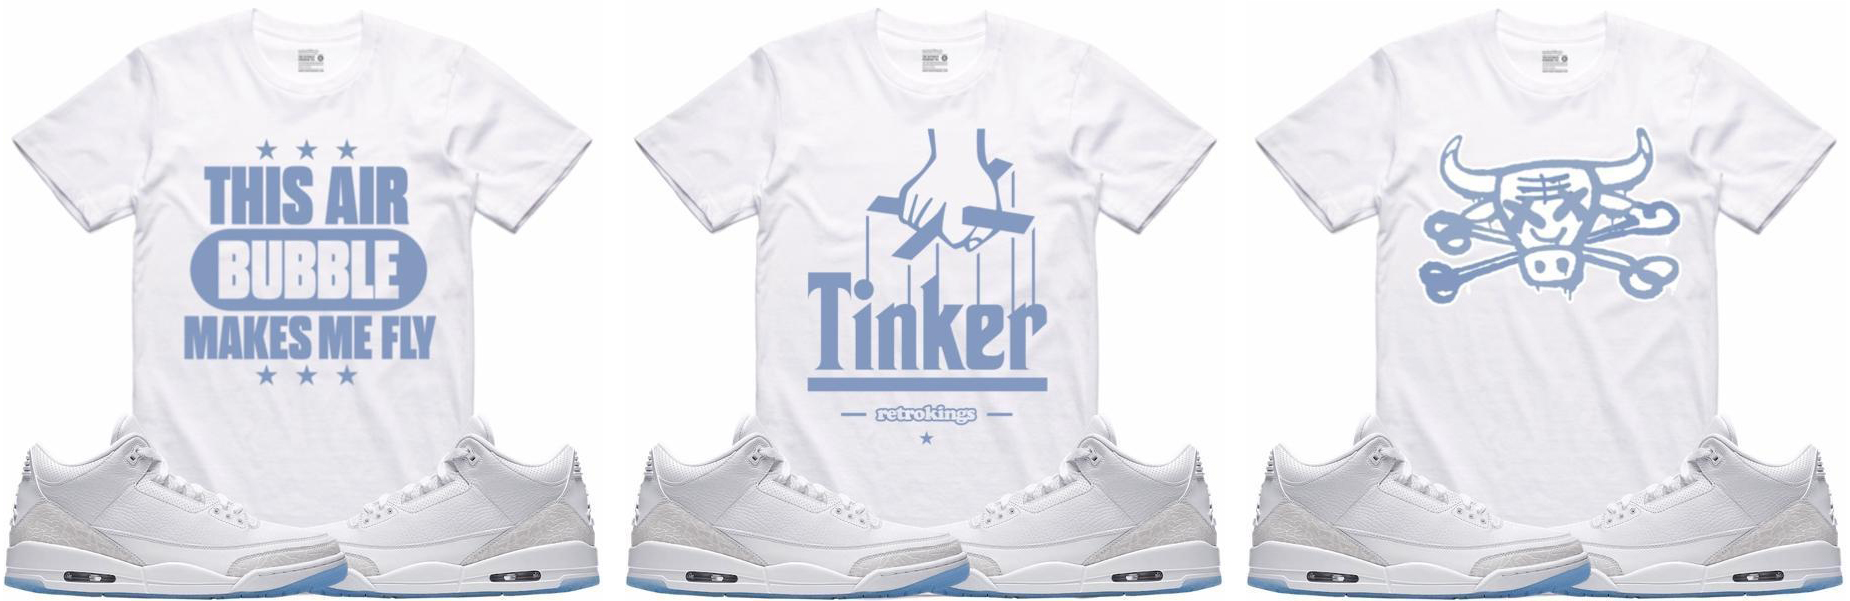 new arrival 3c9a4 dffe1 Jordan 3 Pure Money White Sneaker Shirts by Retro Kings ...